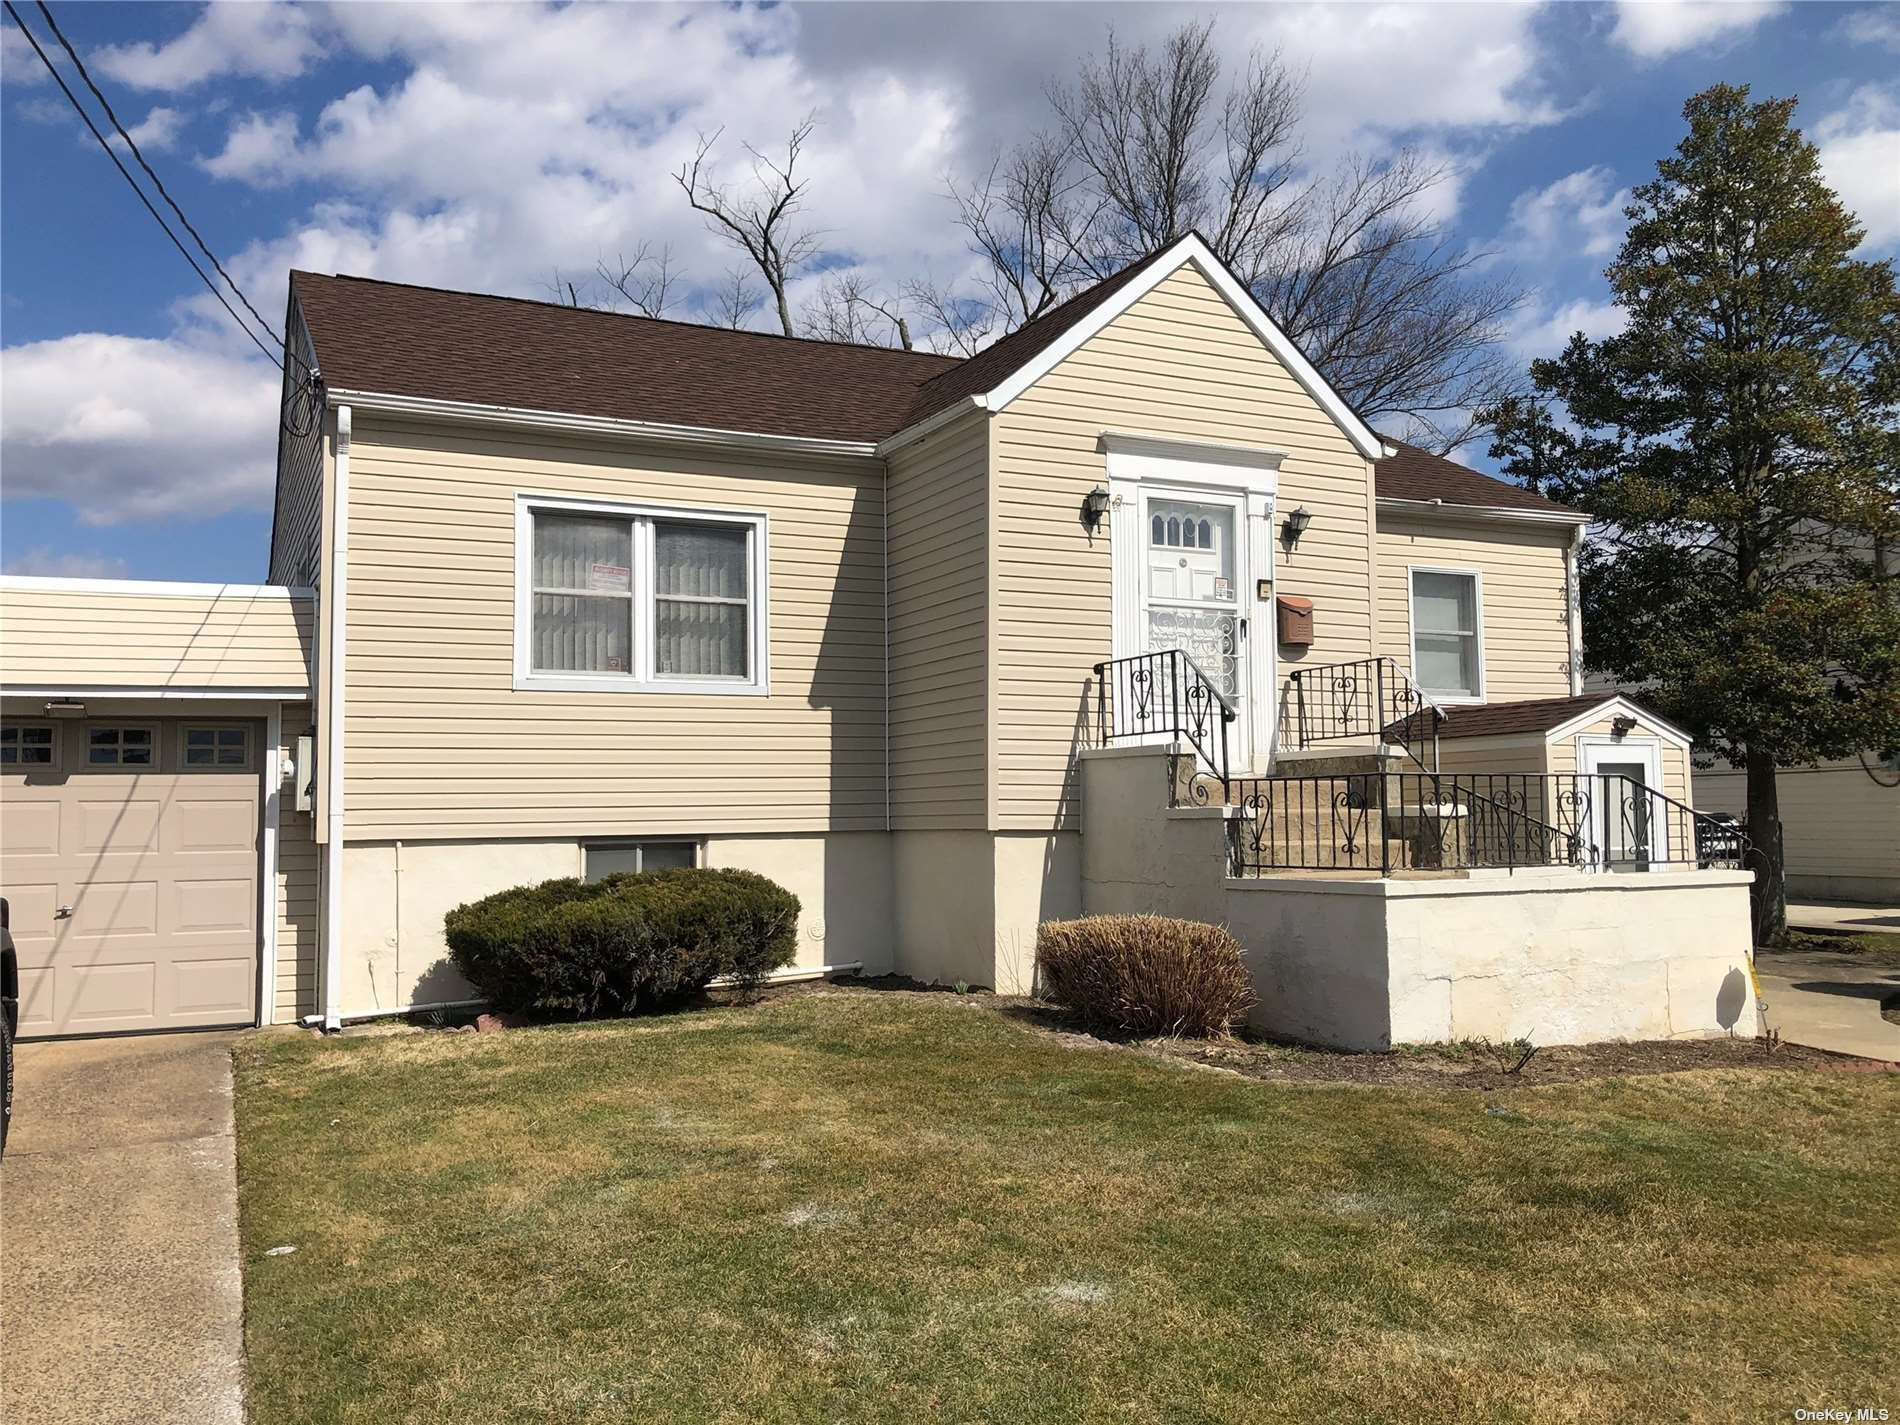 46 Lawrence Street, East Rockaway, NY 11518 - MLS#: 3294820